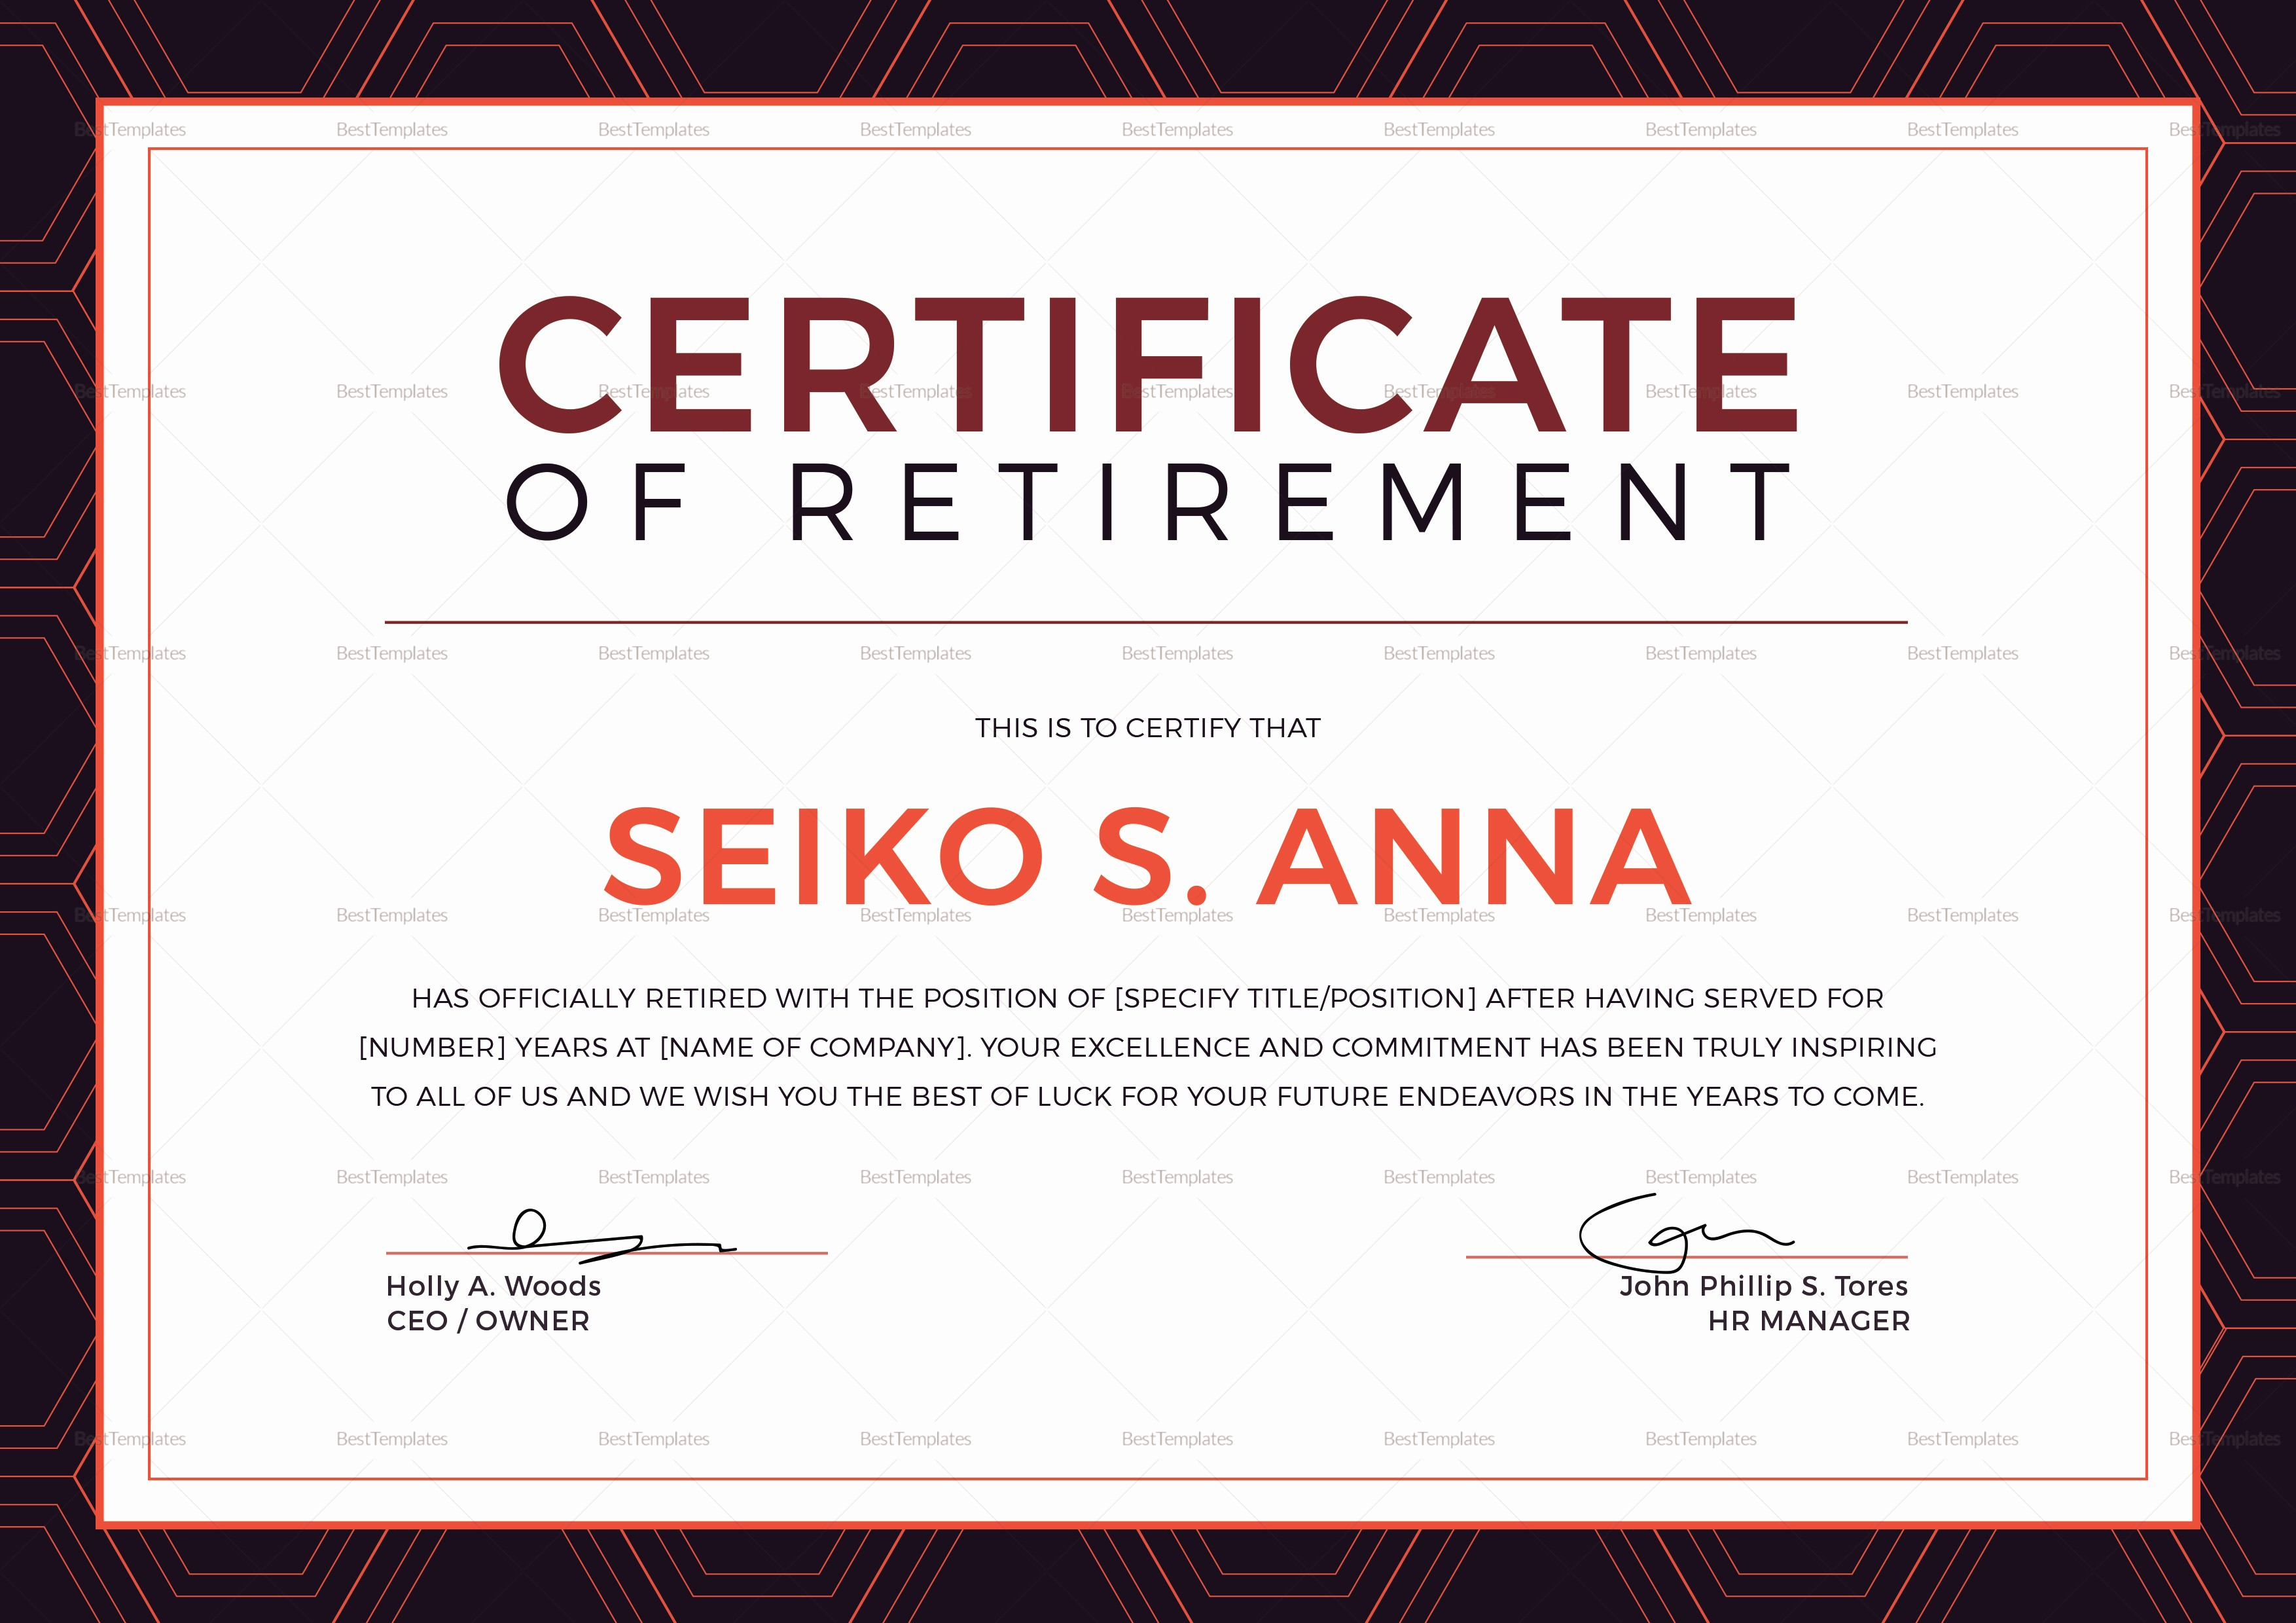 Retirement Certificate Templates for Word Lovely Retirement Certificate Design Template In Psd Word